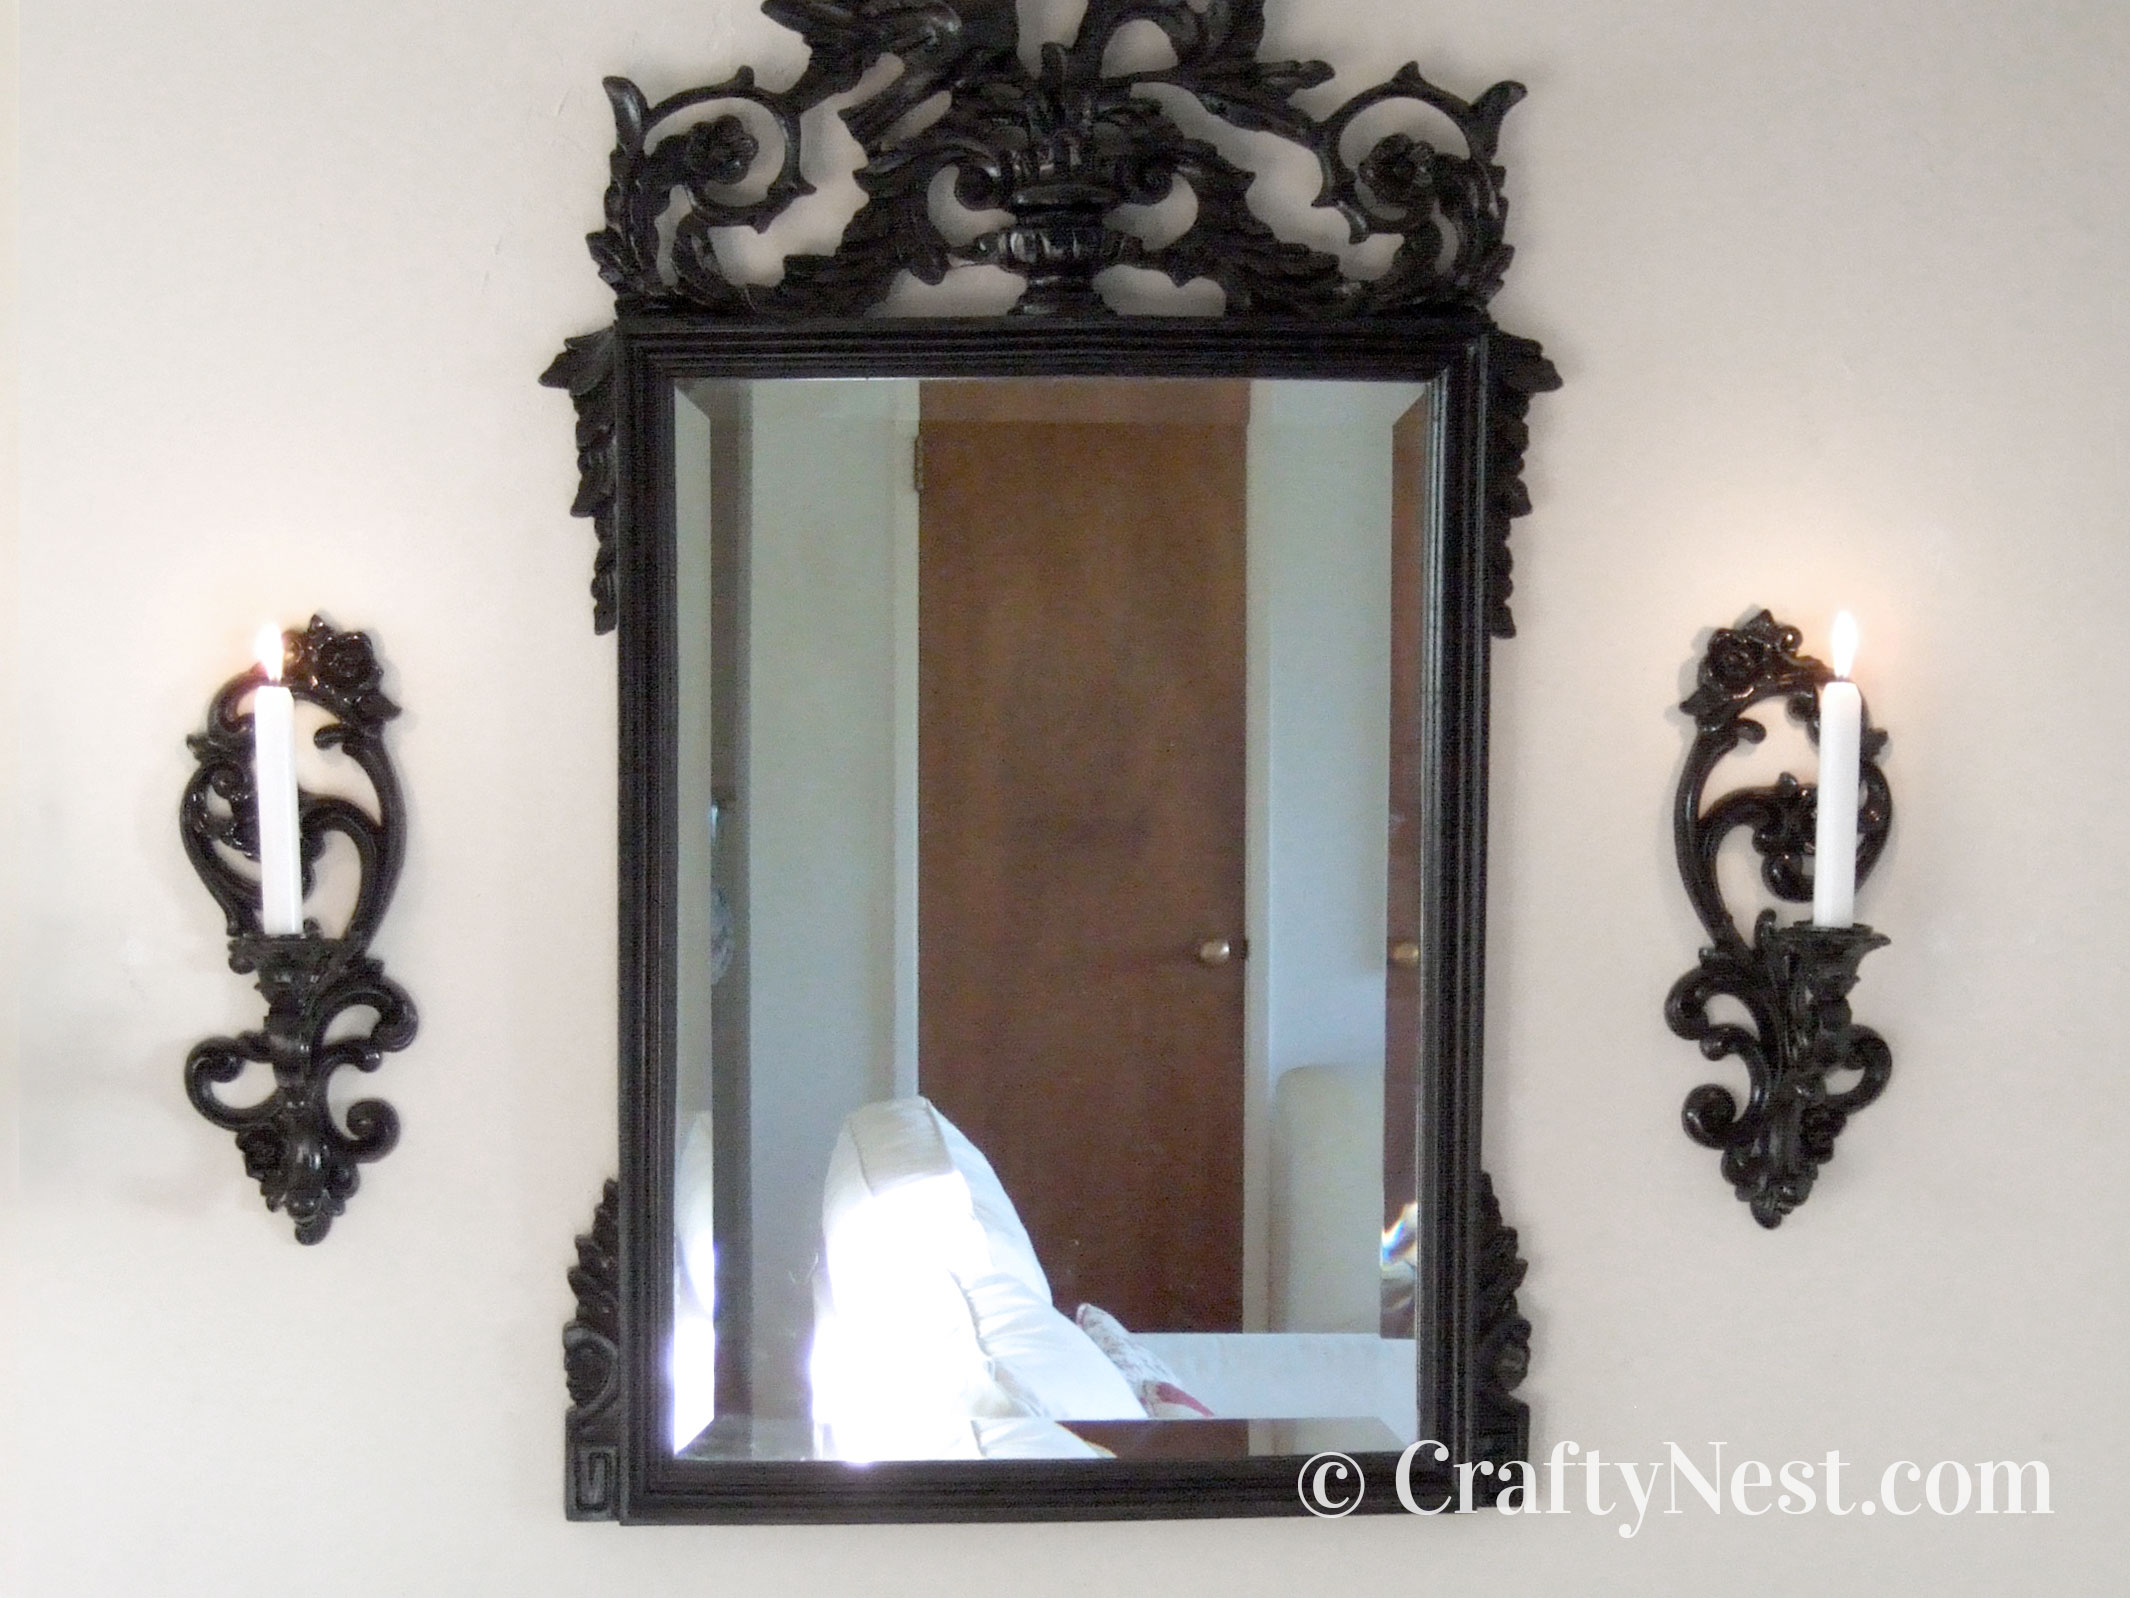 Sconces painted to match a mirror, photo